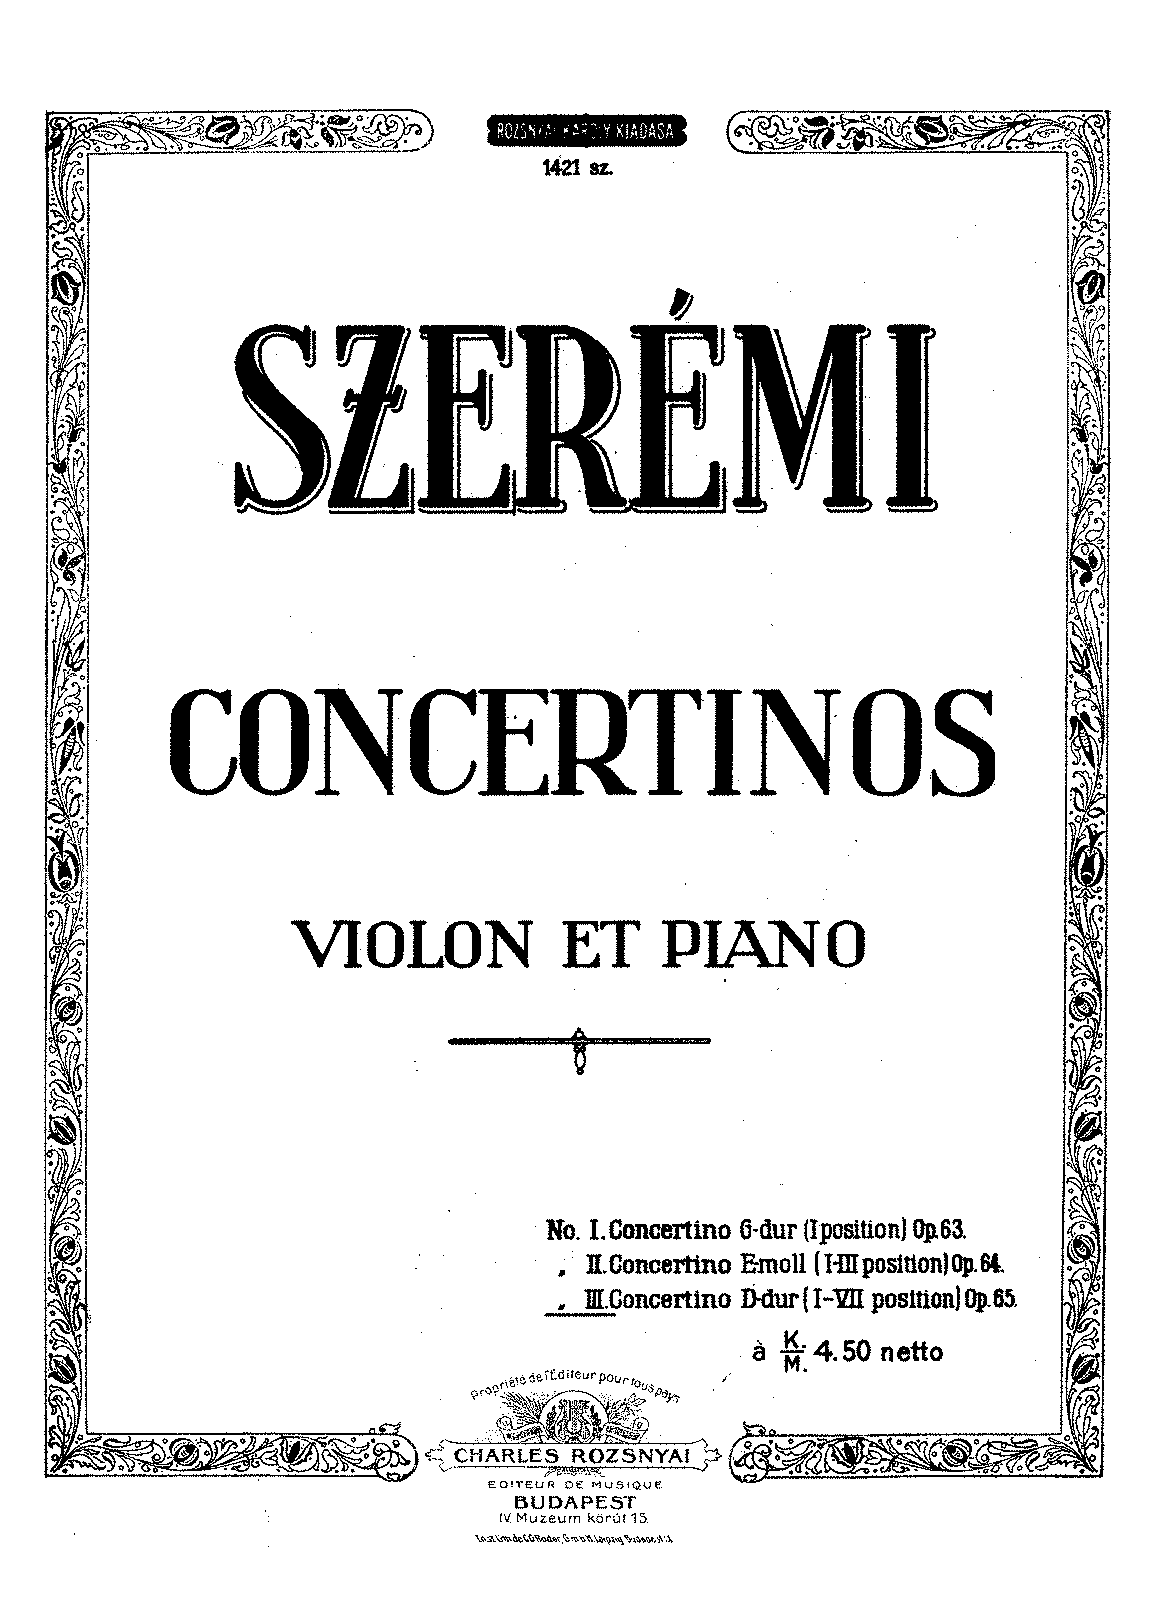 PMLP97375-Szeremi - Concertino No3 in DM Op65 violin piano pno.pdf